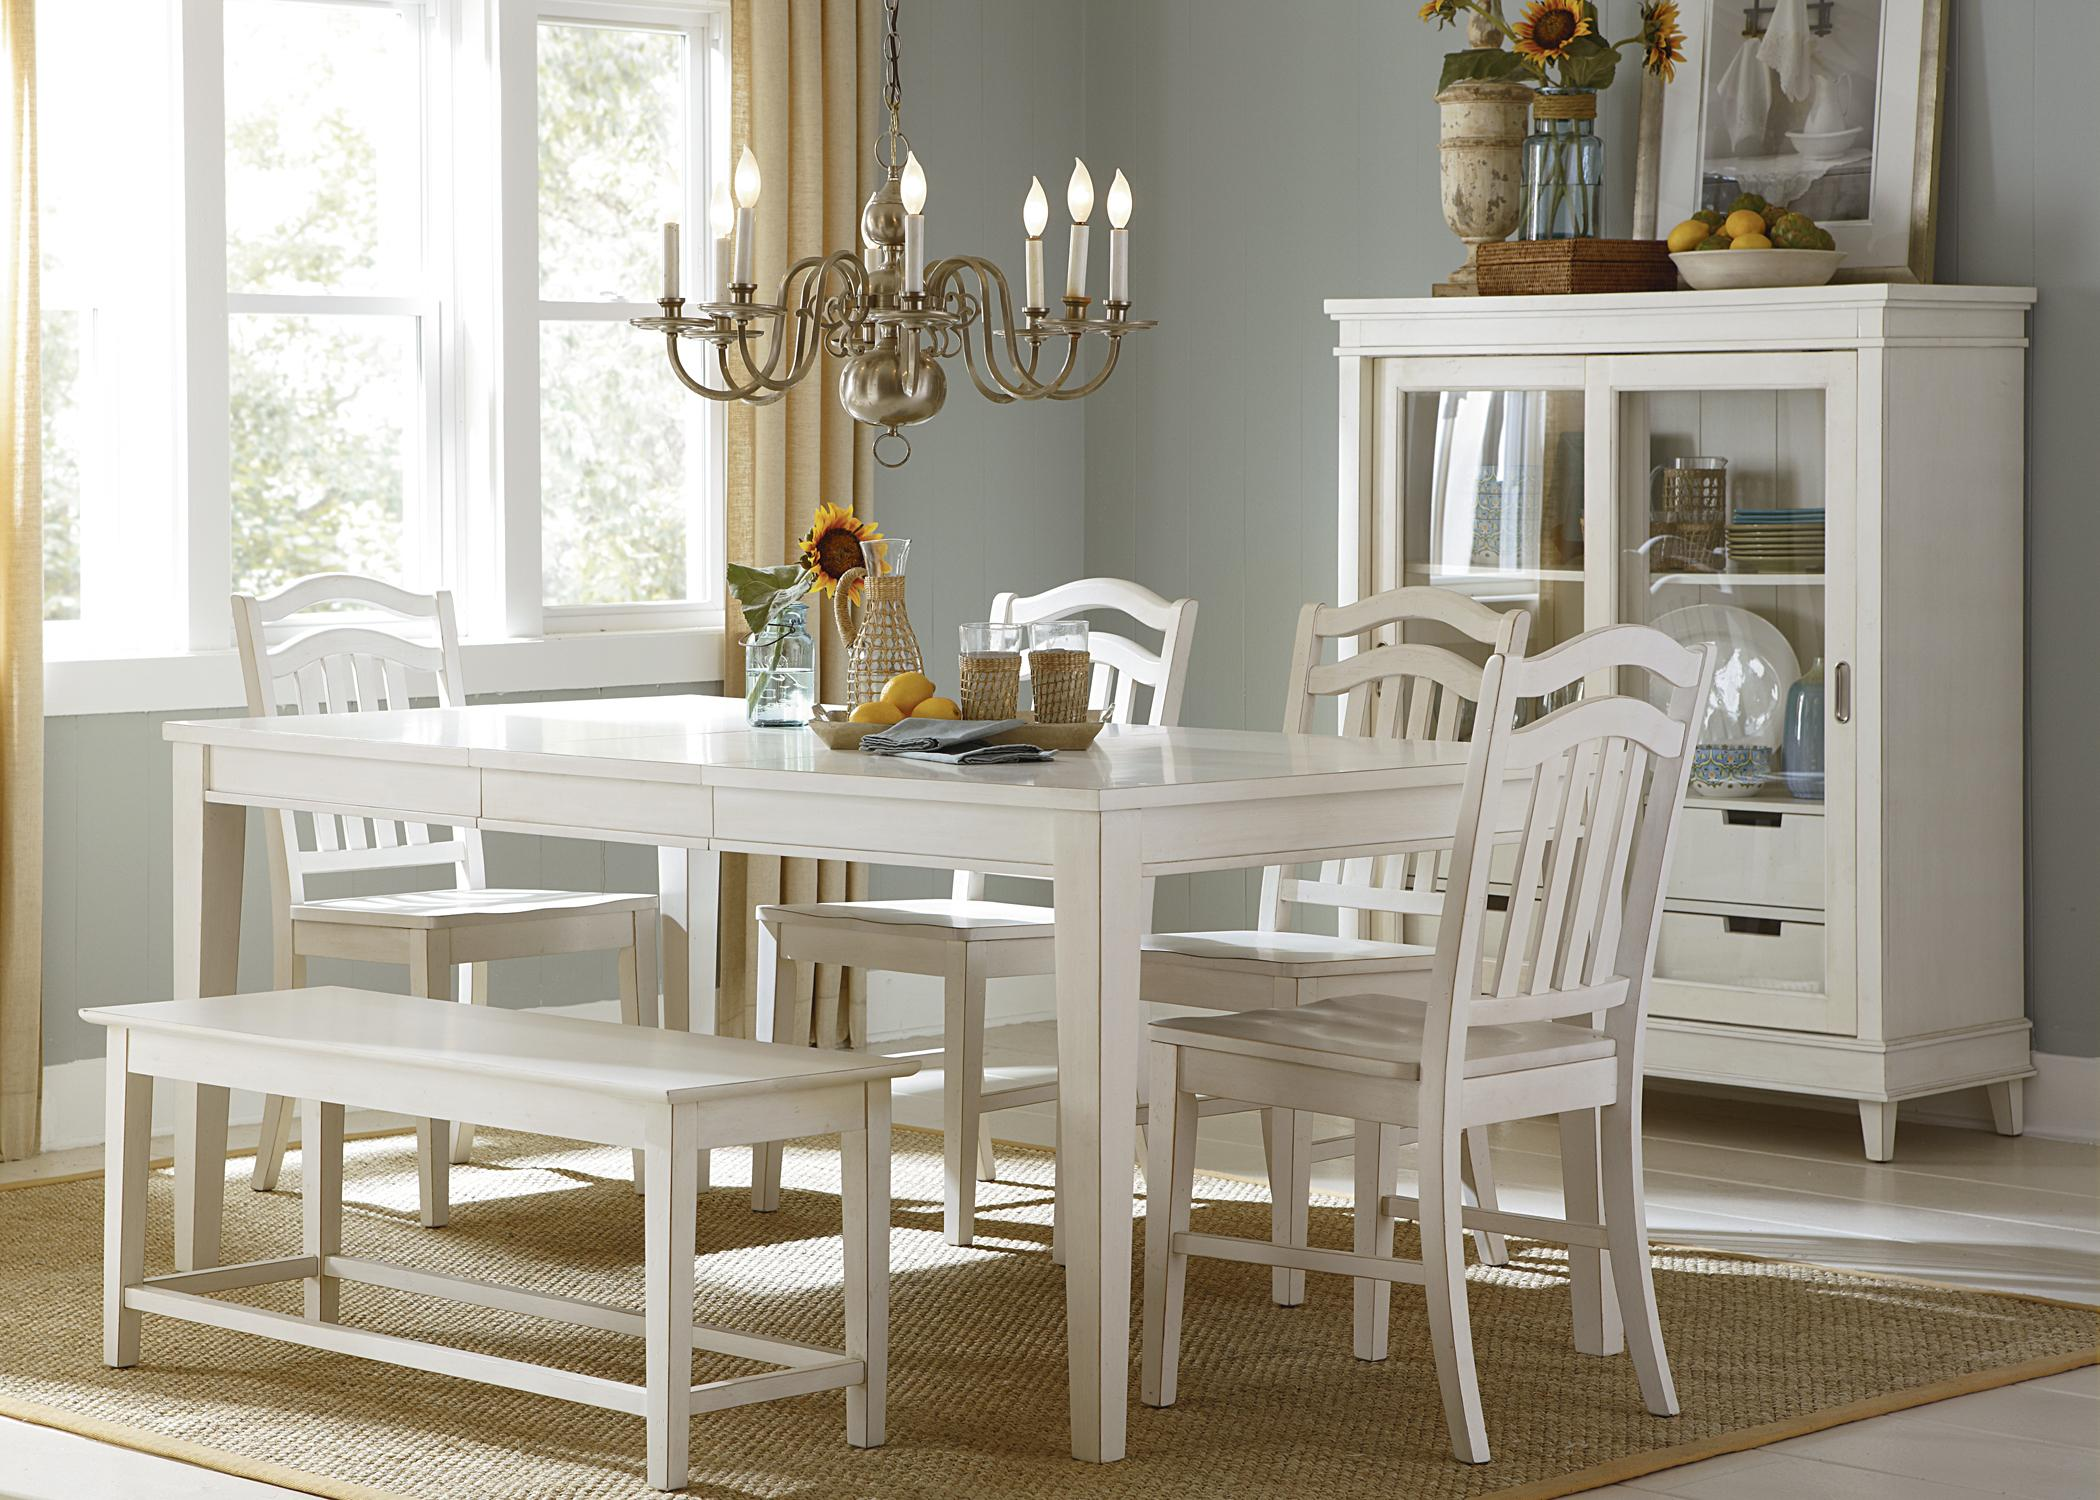 and cottage cottages dining tables style coastal ga furnishings beach table king